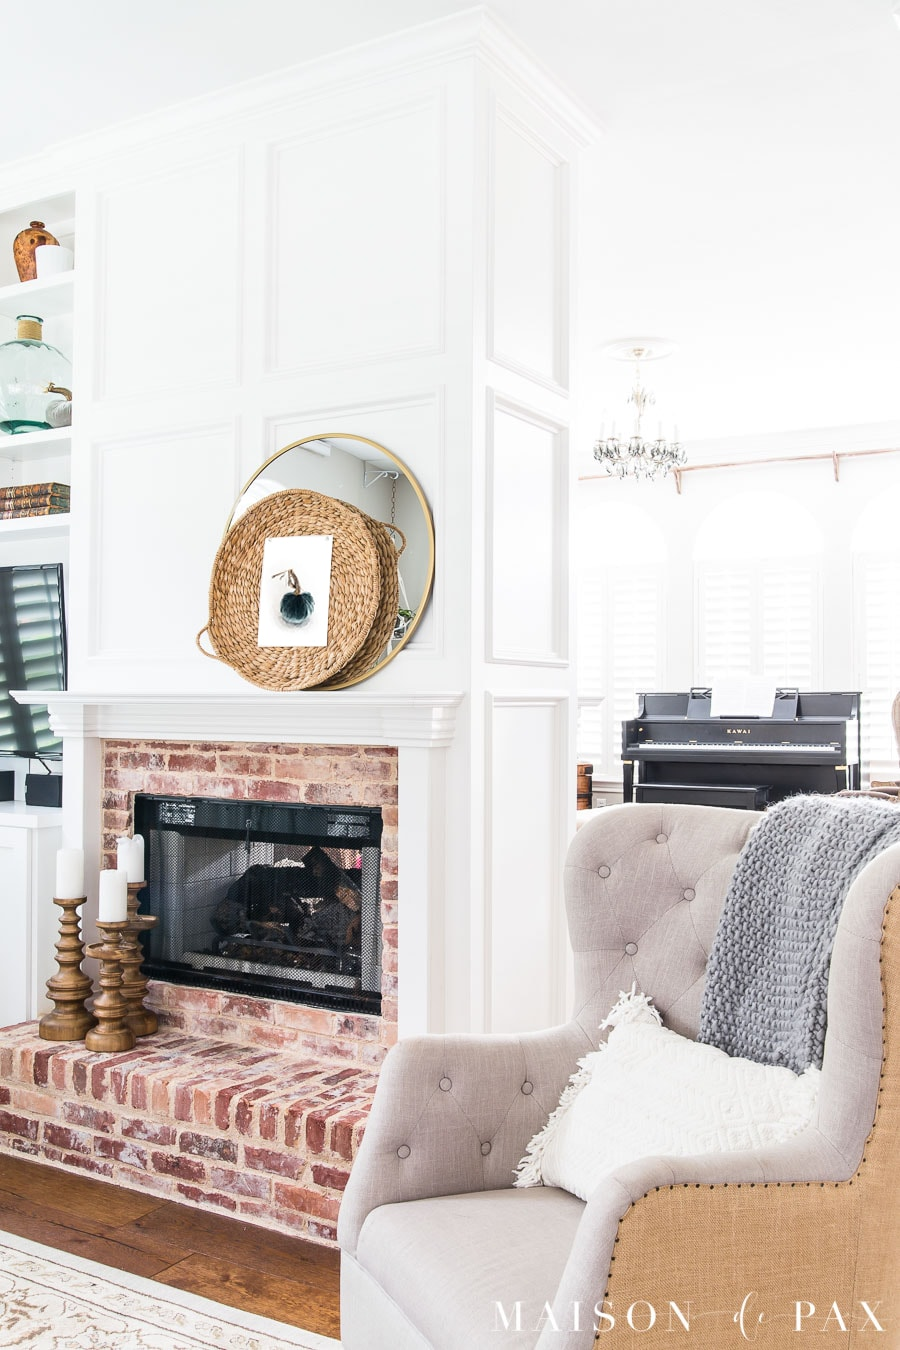 White painted fireplace with antique brick- Maison de Pax